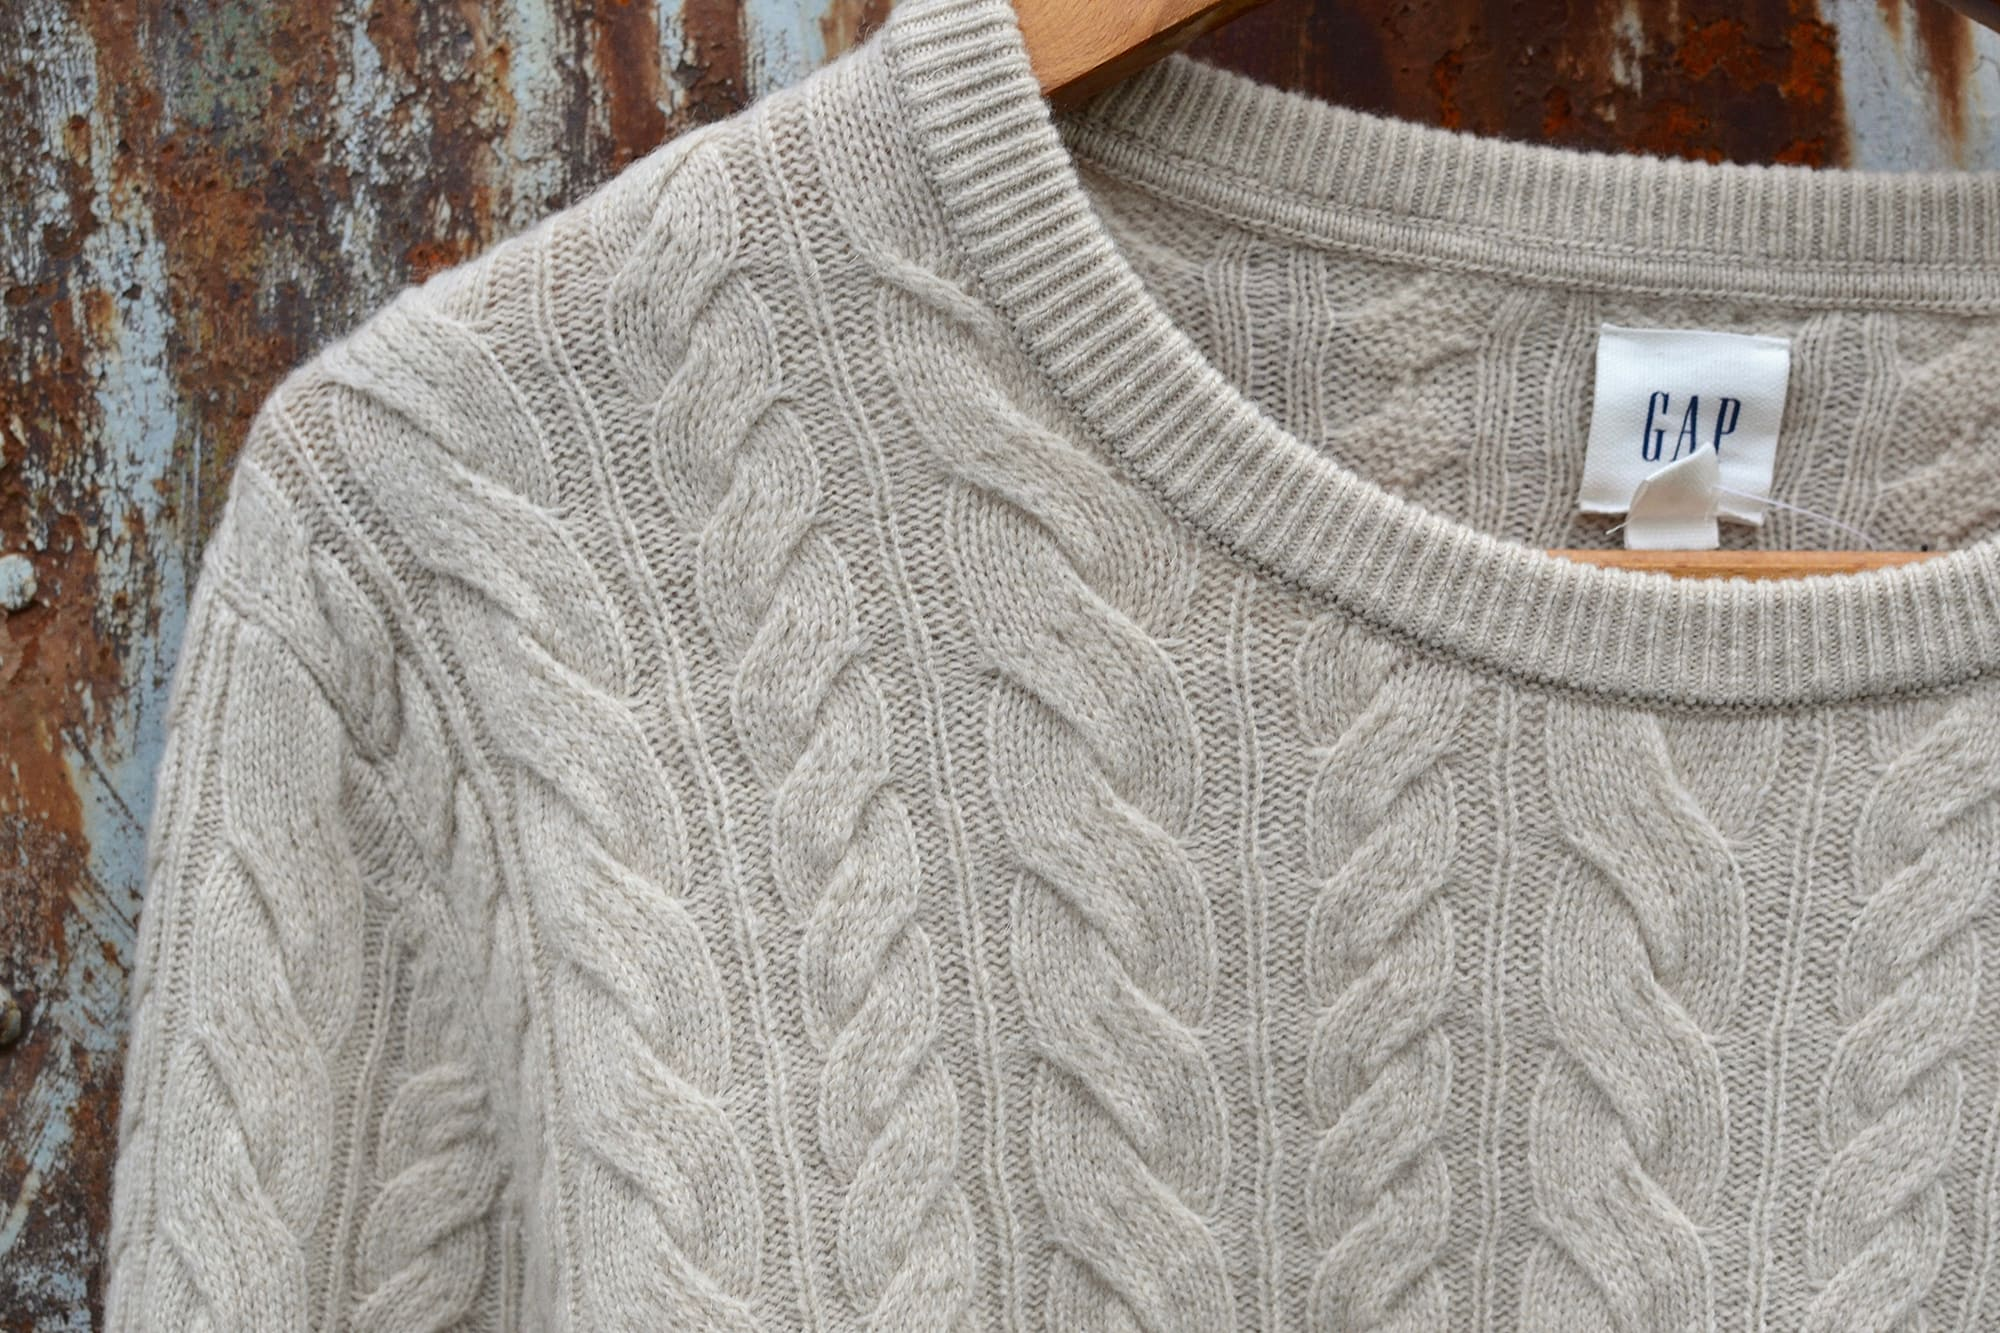 GAP knit sweat inspired by irish aran wool knit pull